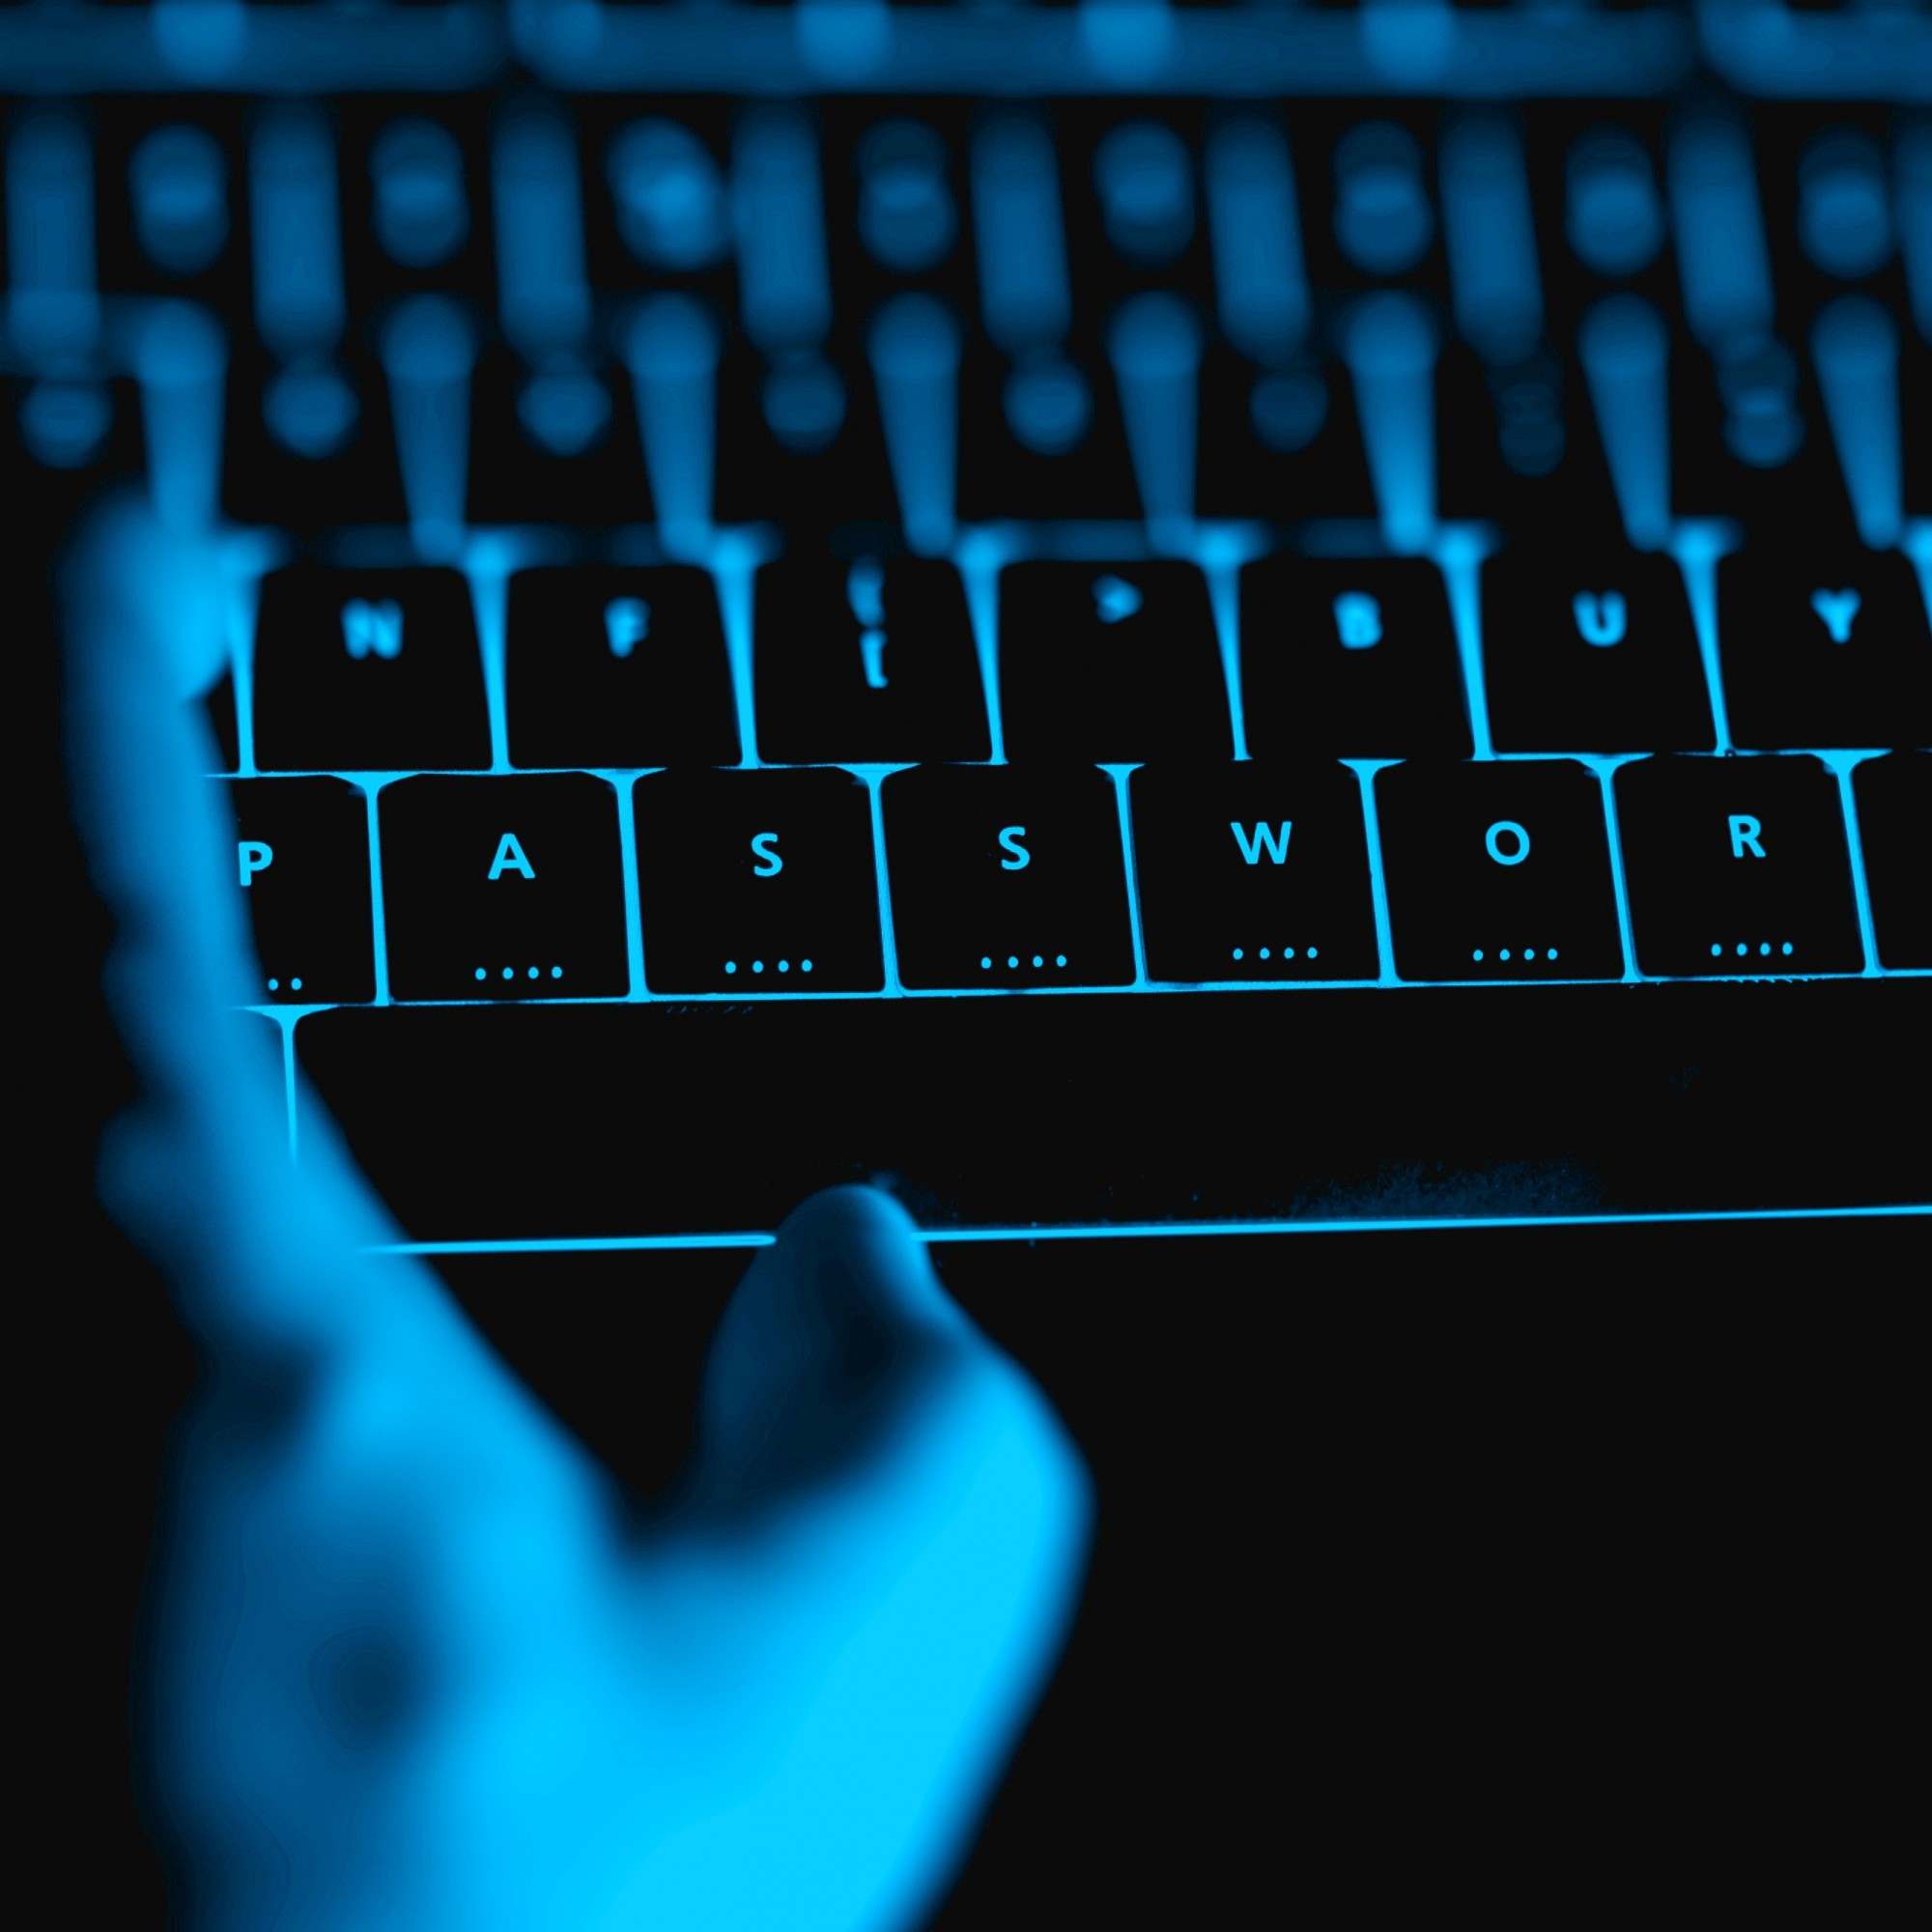 'Do not pay any ransom' - Criminal gangs are threatening business with cyber attacks